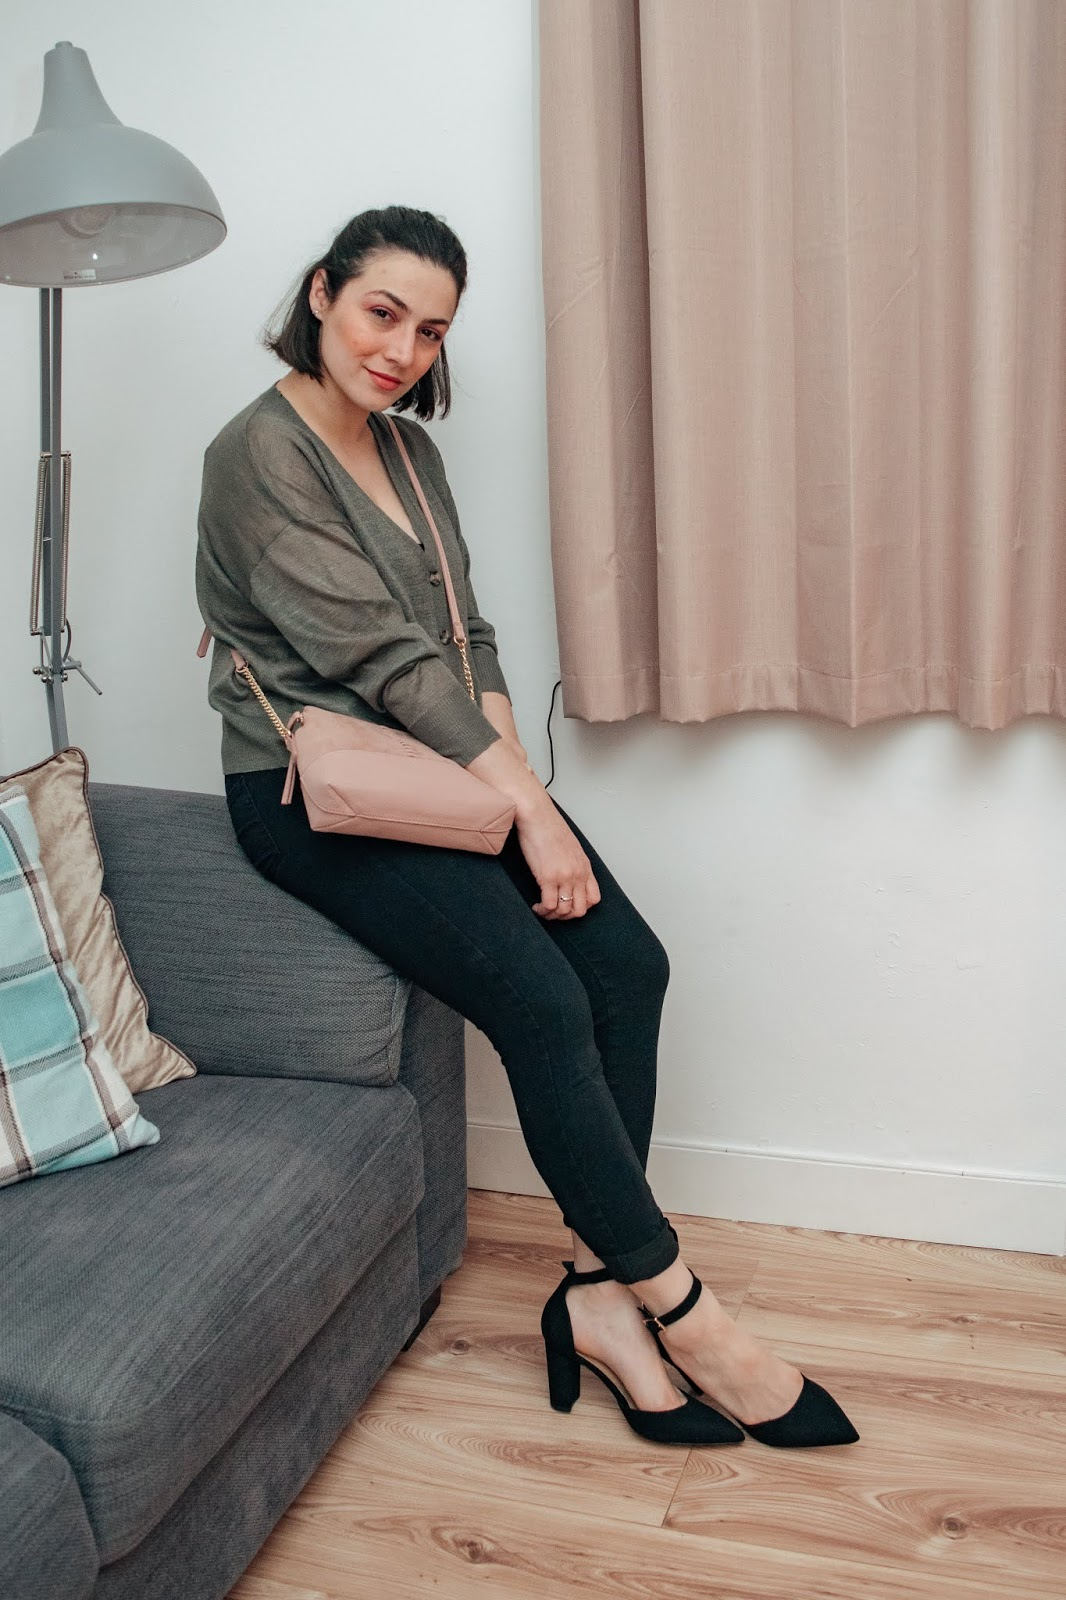 Sitting on a grey sofa wearing a boxy khaki cardigan, black jeans and black pointed heels.